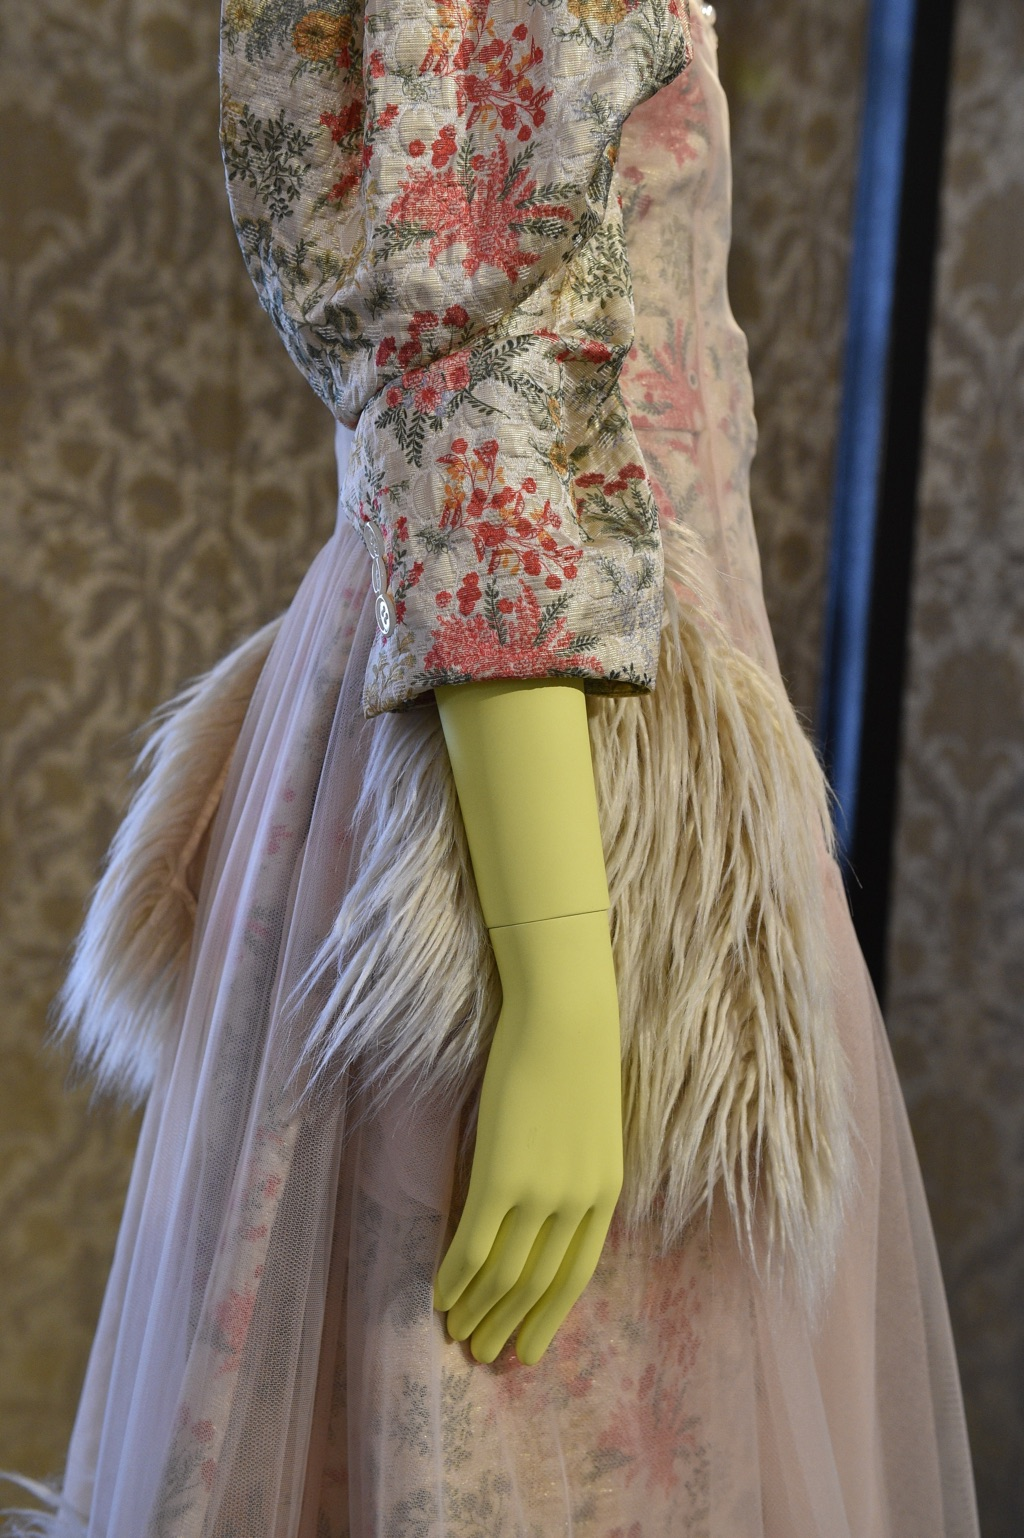 Detail of Simone Rocha garment on Tribe female mannequin for Vogue Talents